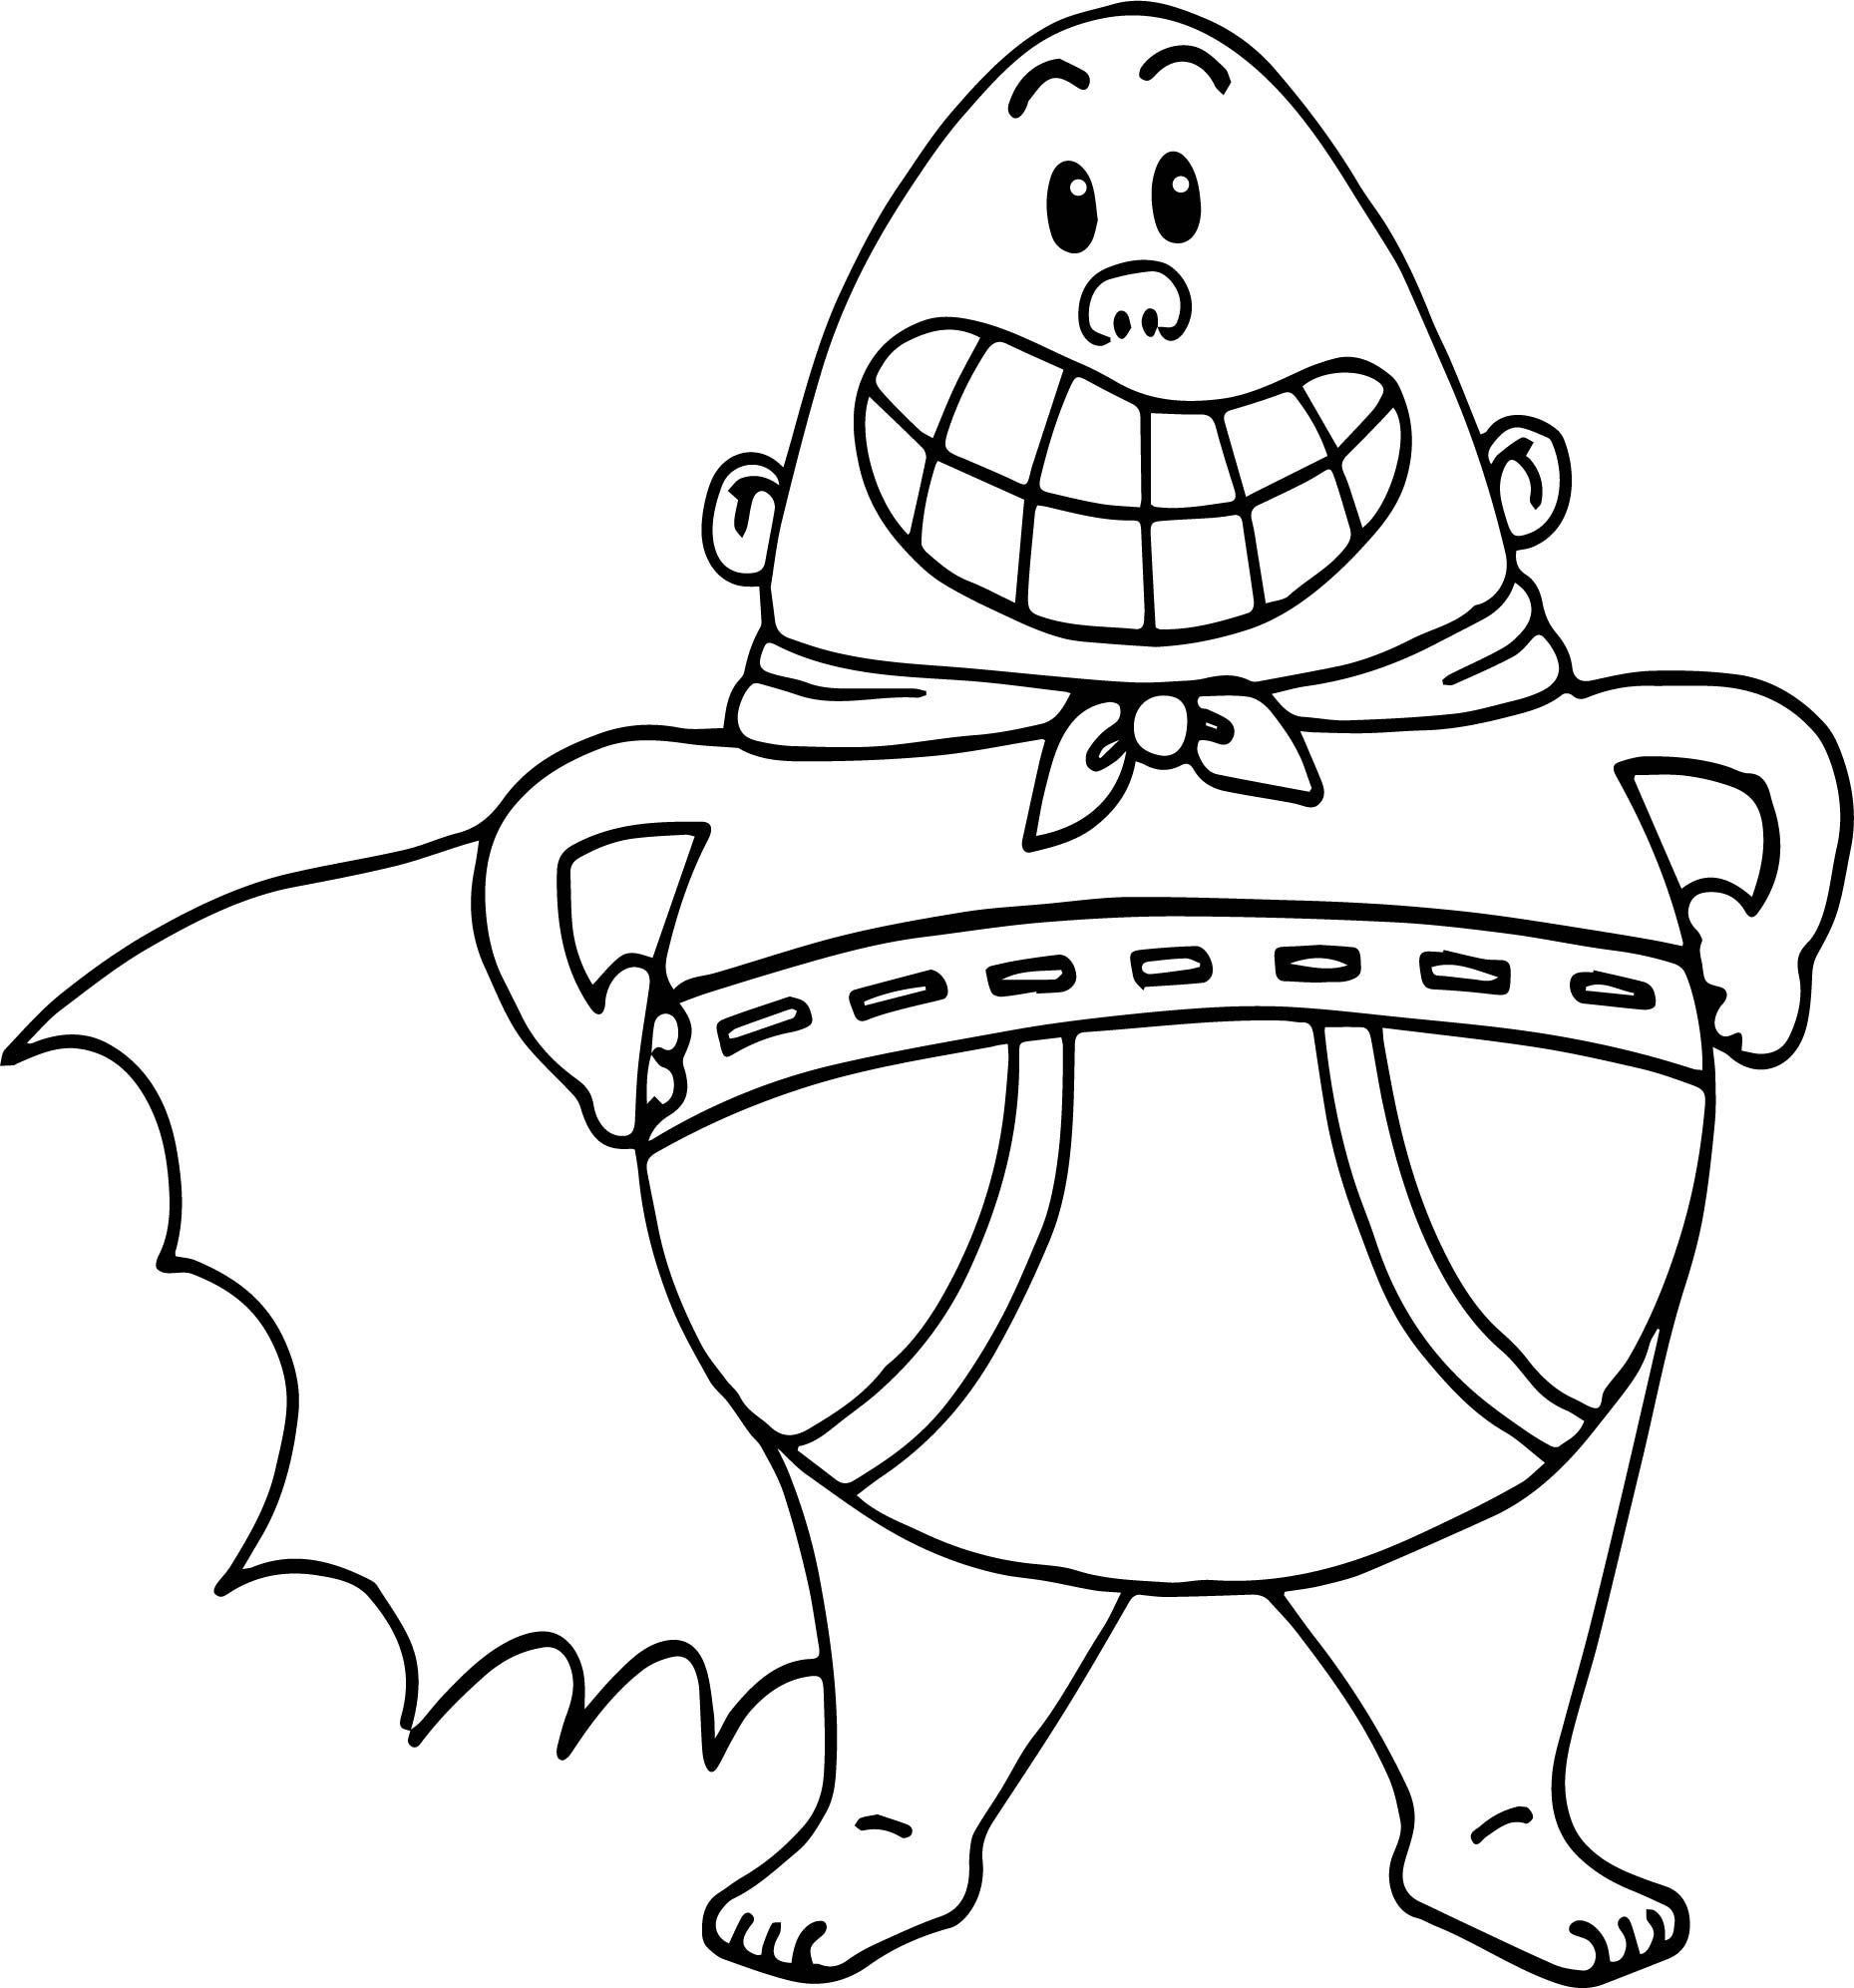 Captain Underpants Coloring Pages Luxury Awesome Captain